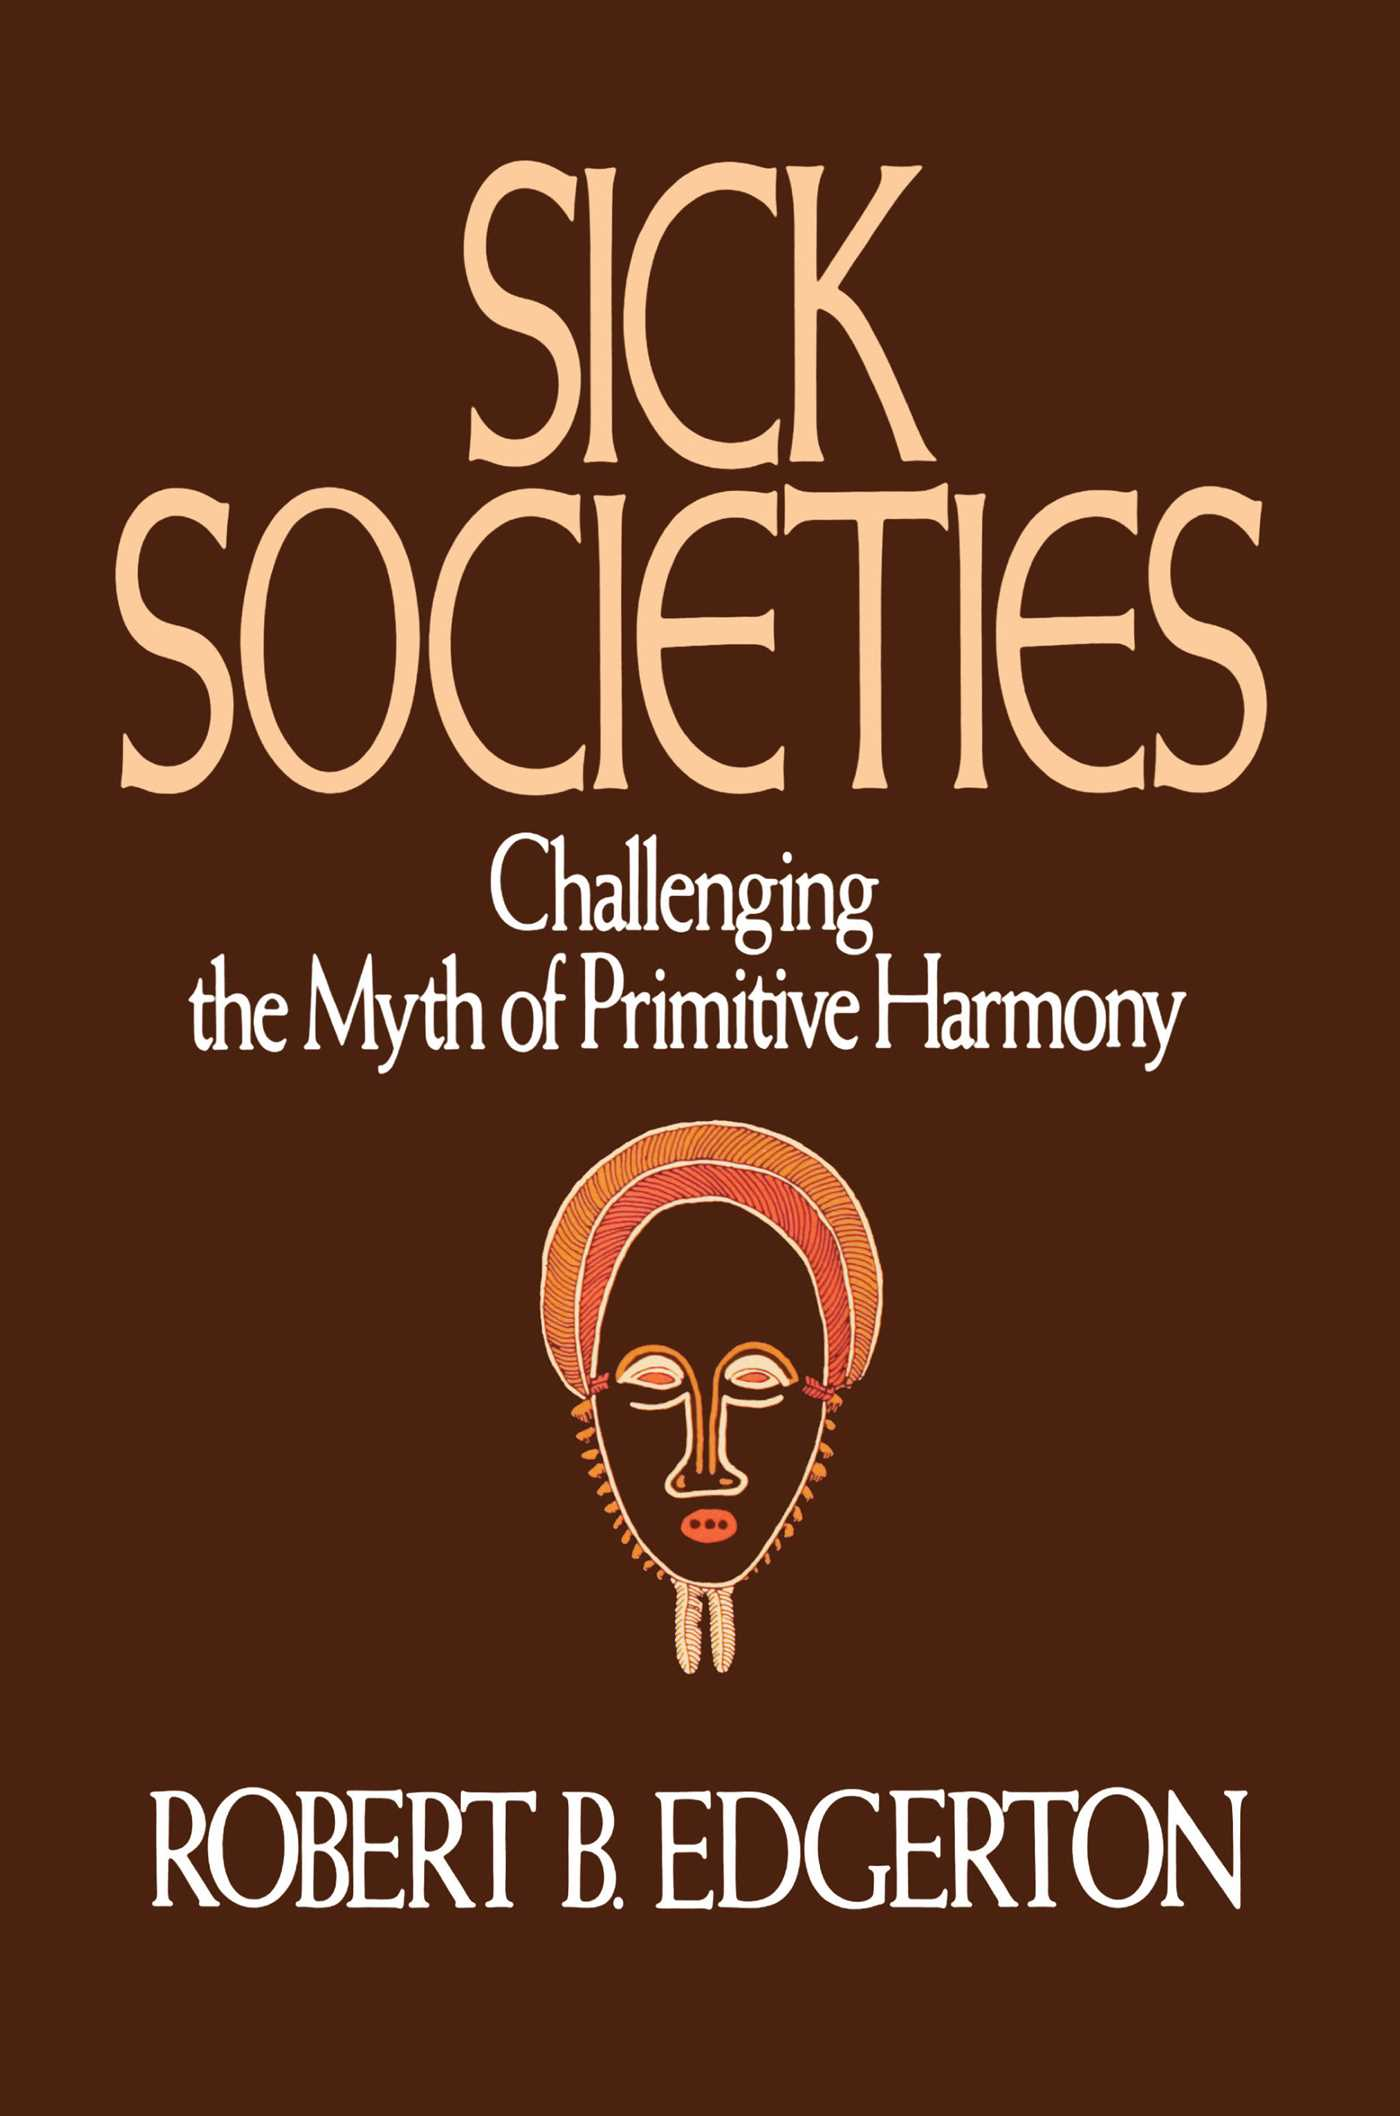 an analysis of robert edgertons book sick societies It is a book full of promiscuous ideas that are jostling for the reader's attention,  almost  in his curious book sick societies, robert edgerton (1992) collected   but i have been drawn to a type of explanation which, i think, is conceptually.